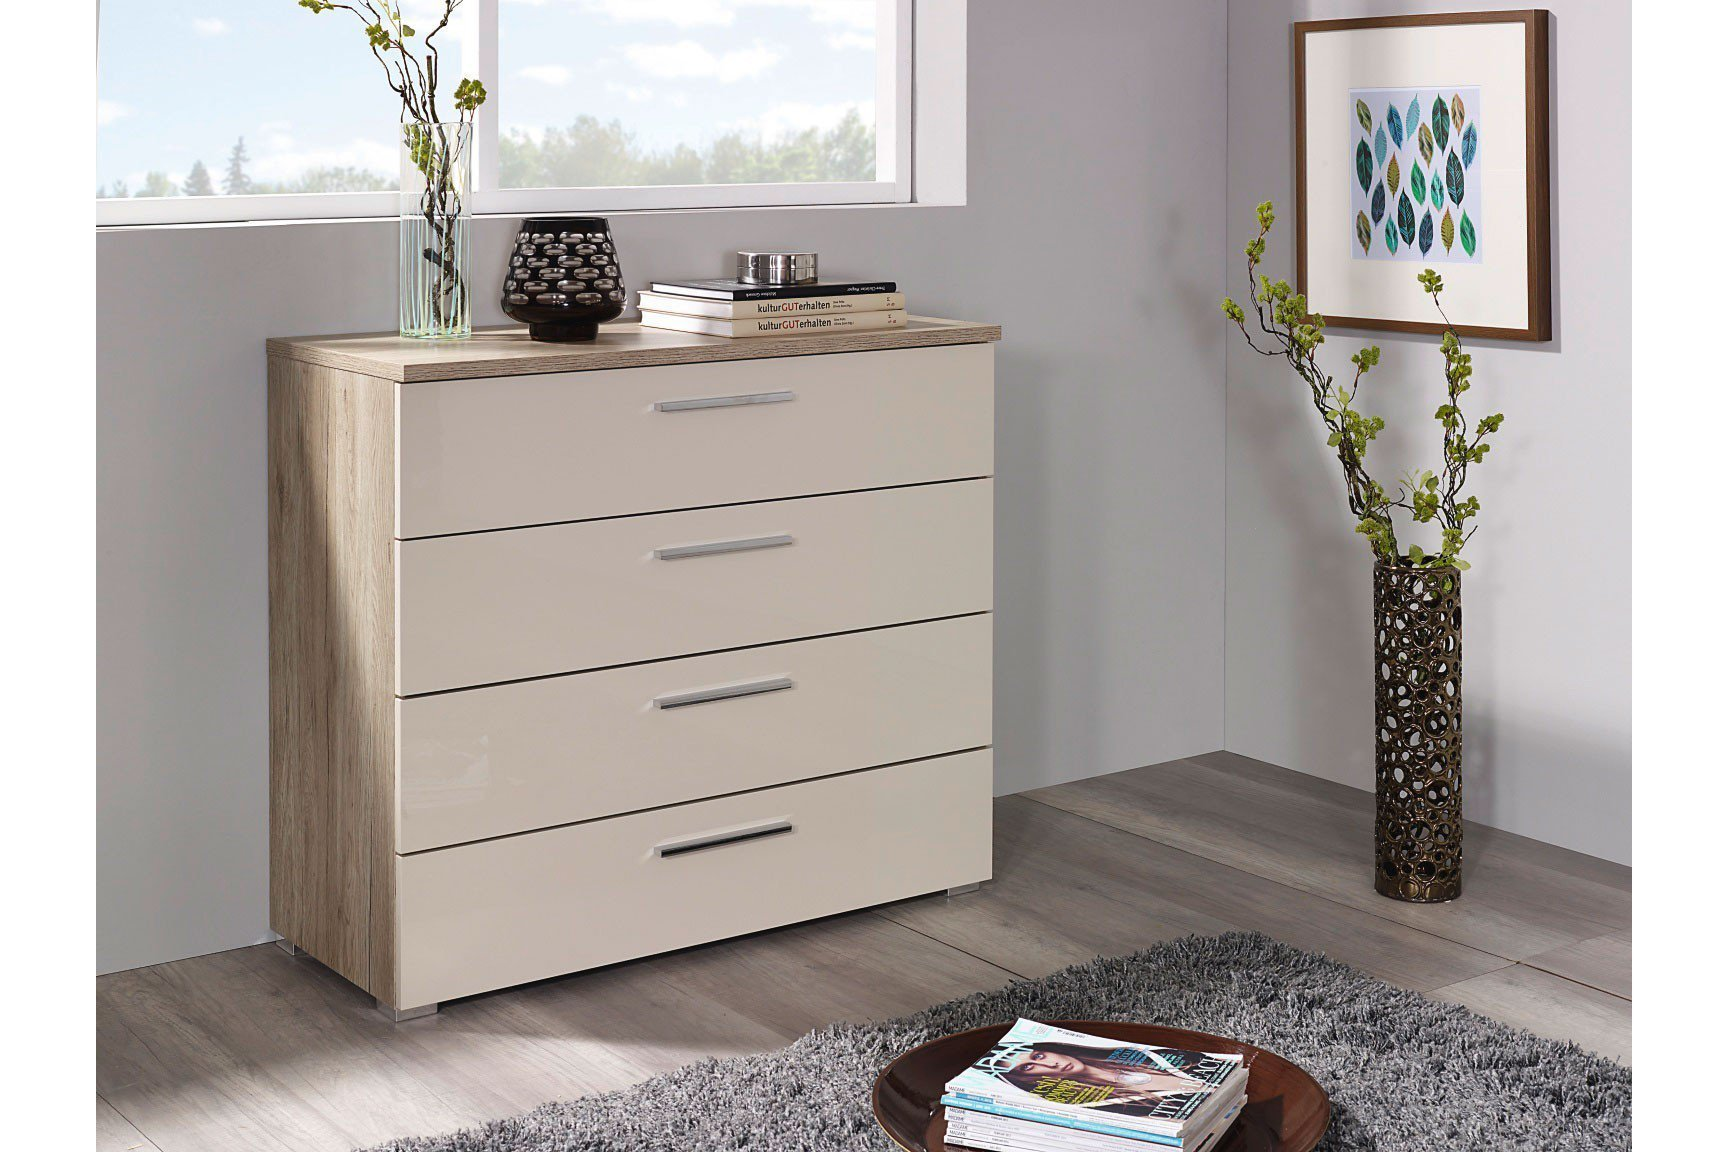 rauch kommode solo hochglanz cappuccino m bel letz ihr online shop. Black Bedroom Furniture Sets. Home Design Ideas